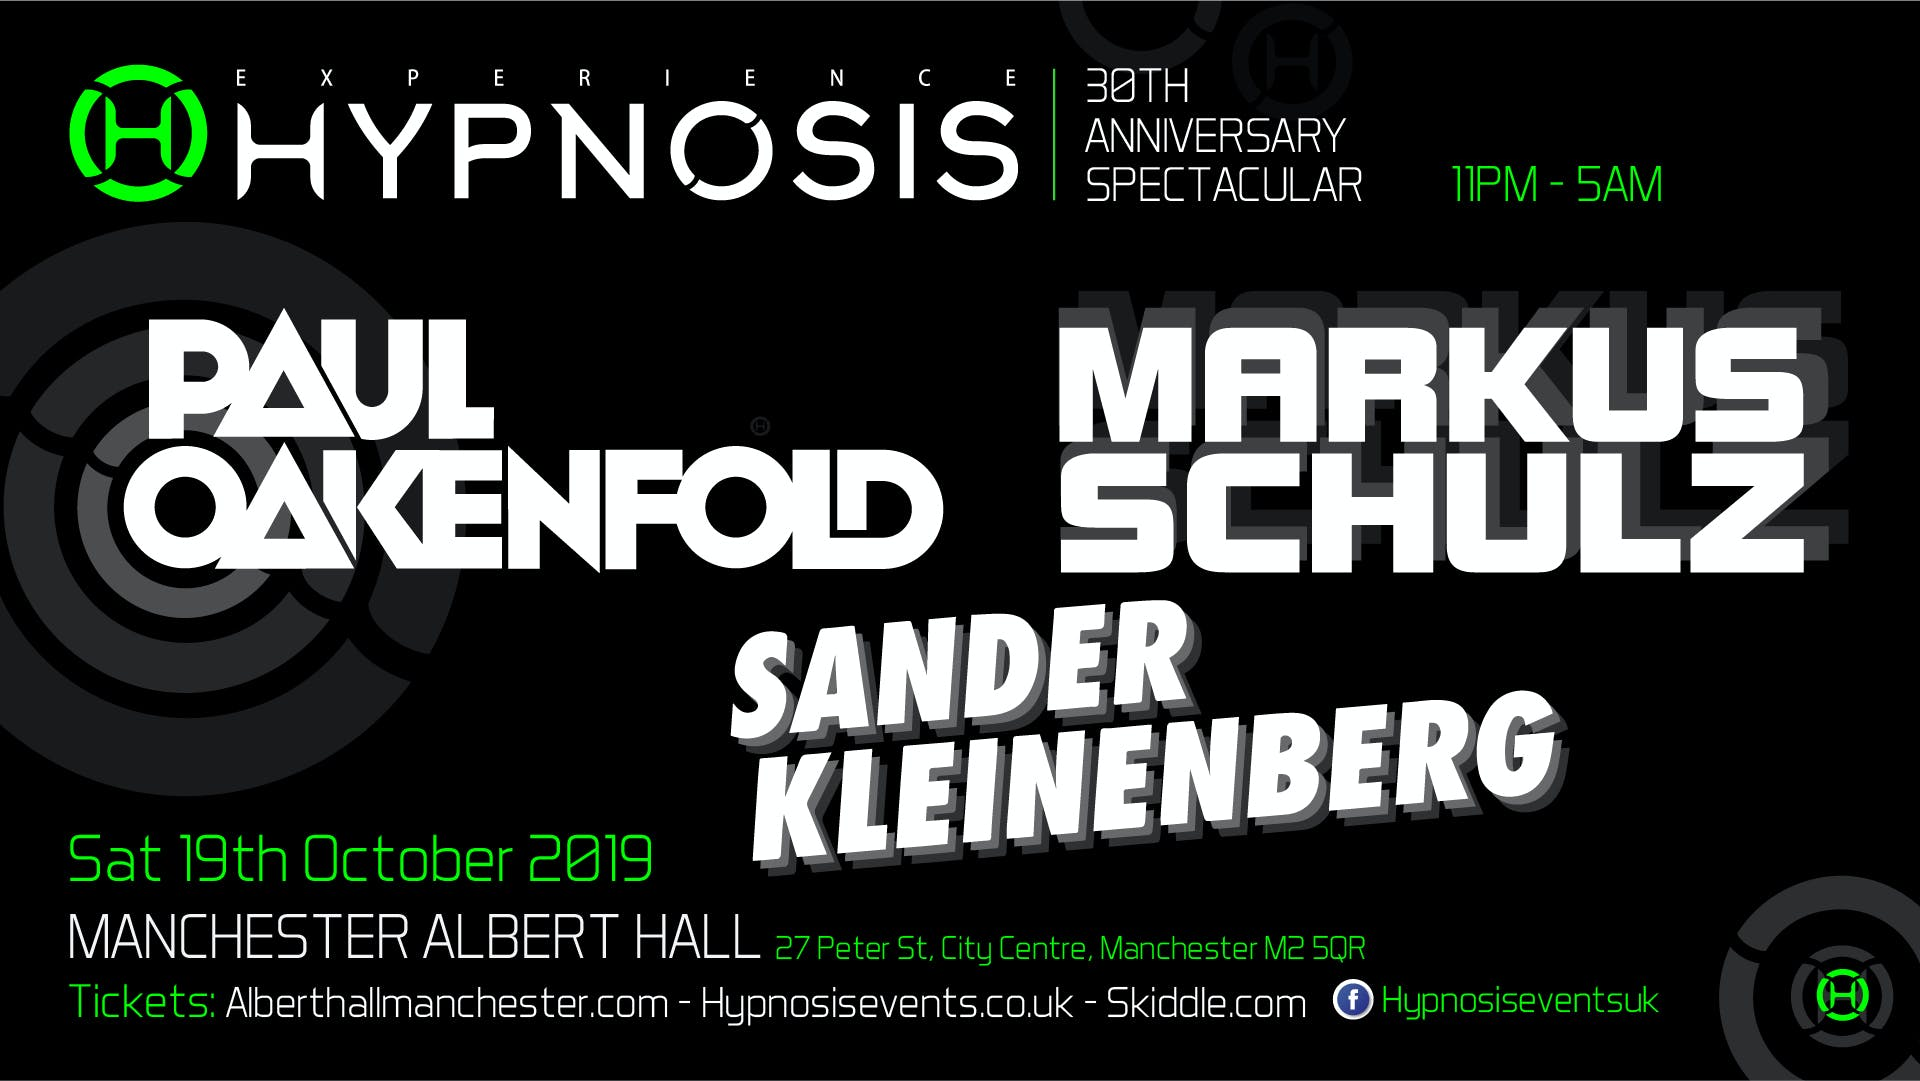 Postponed: Hypnosis 30th Anniversary: Paul Oakenfold And Markus Schulz